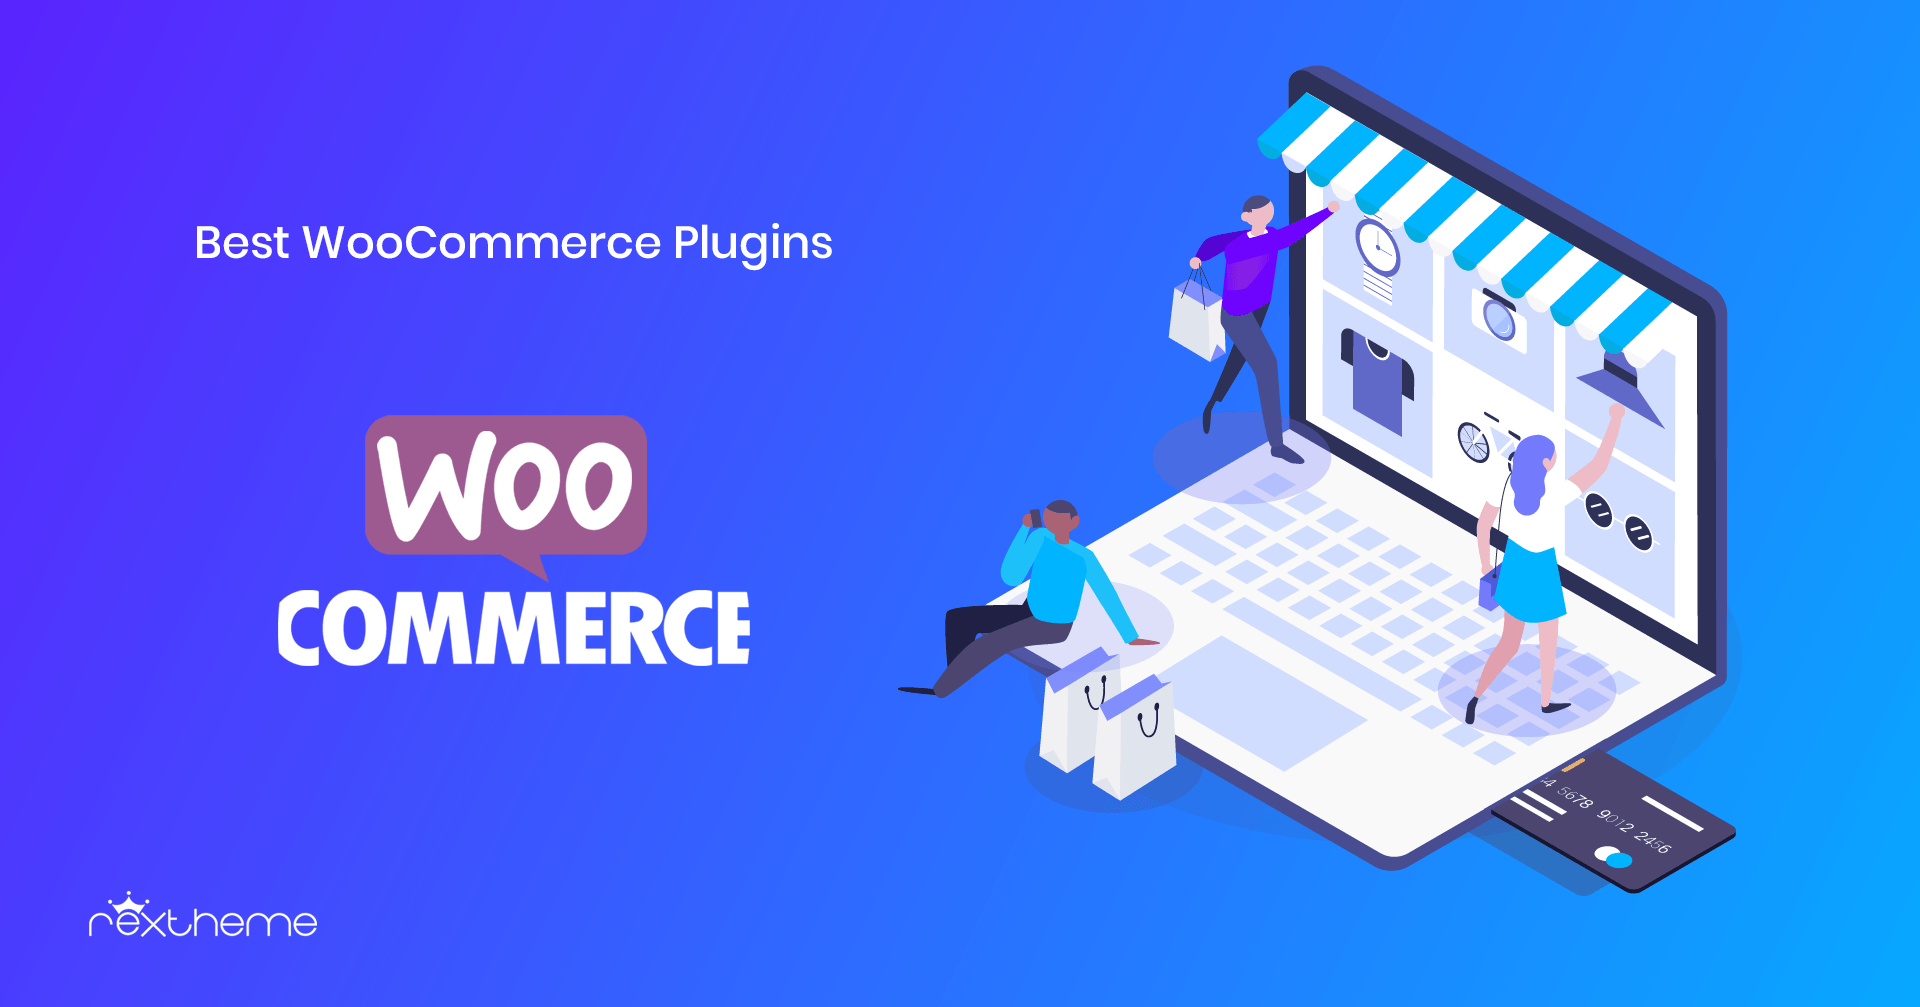 10+ Best WooCommerce Plugins That Can Boost Your Shop